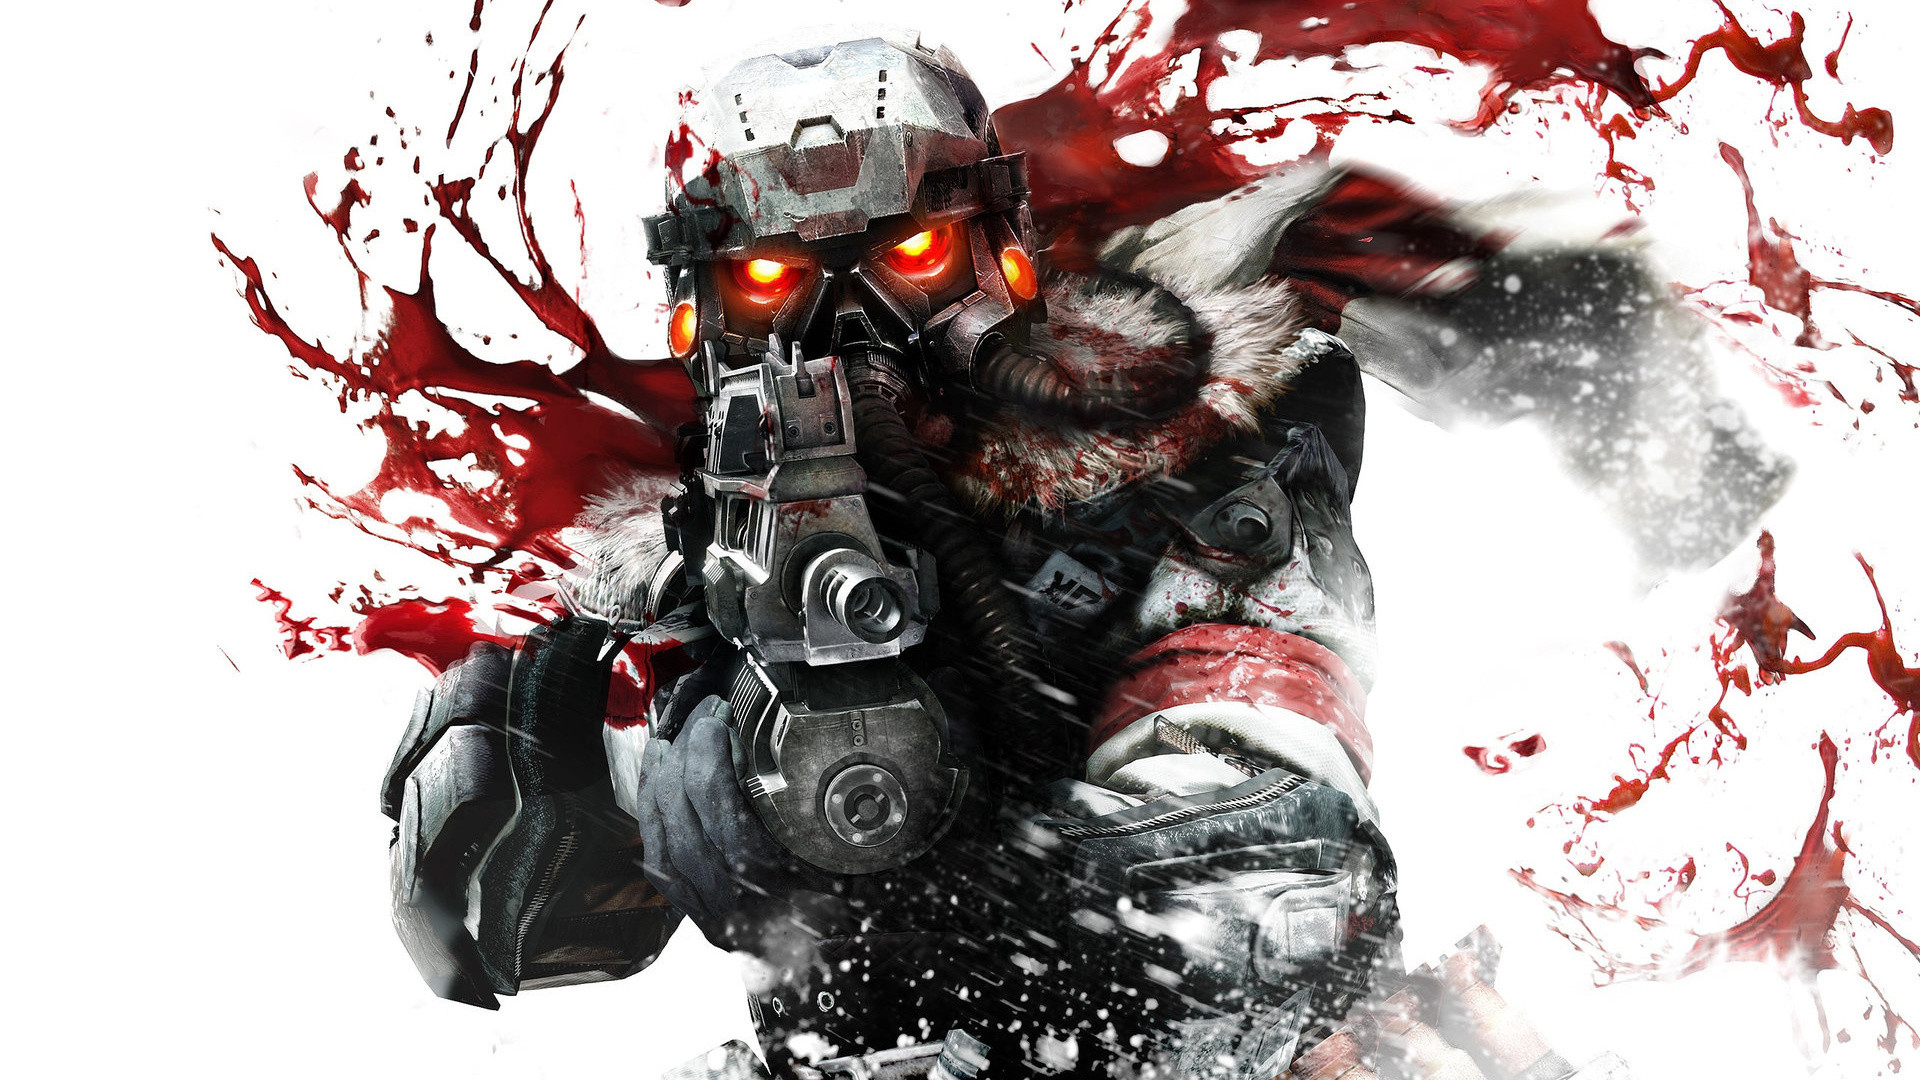 Abstract Gaming Wallpapers 1080p 69 Images